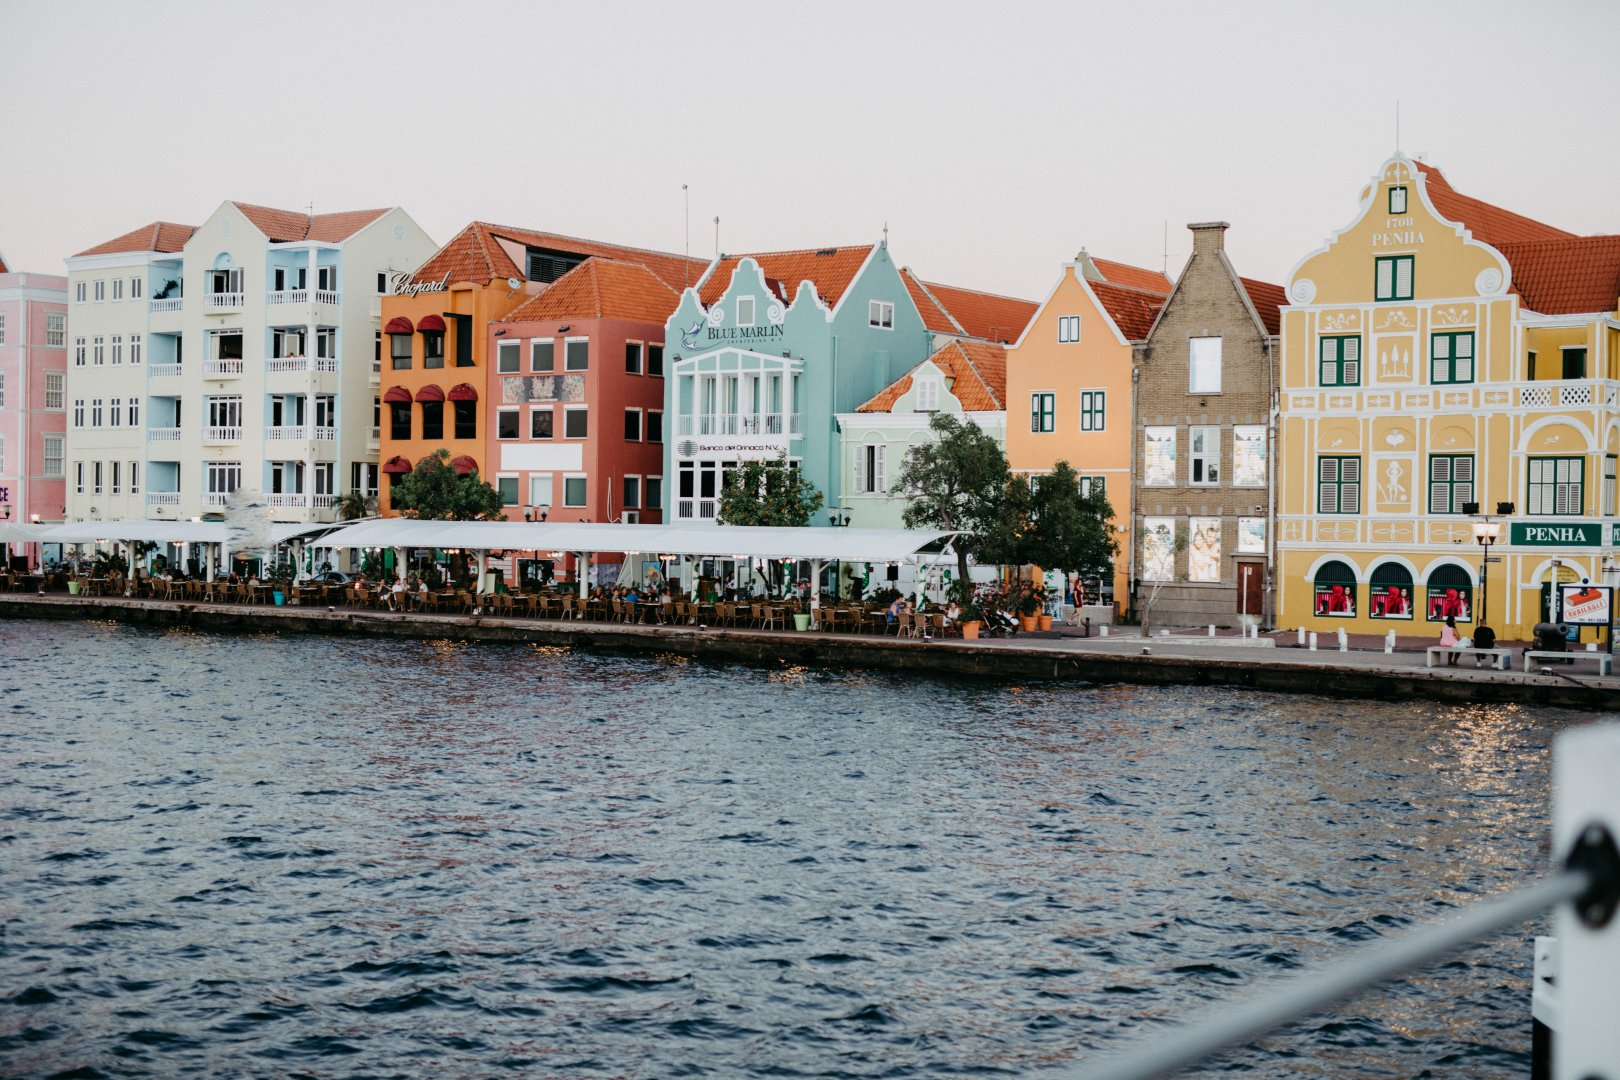 Water Waterway Town Property Architecture Building House Human settlement Sky Vacation Home Reflection City Canal Tourism Channel Sea Neighbourhood Real estate Facade River Mixed-use Residential area Vehicle Coast Coastal and oceanic landforms Tourist attraction Boat